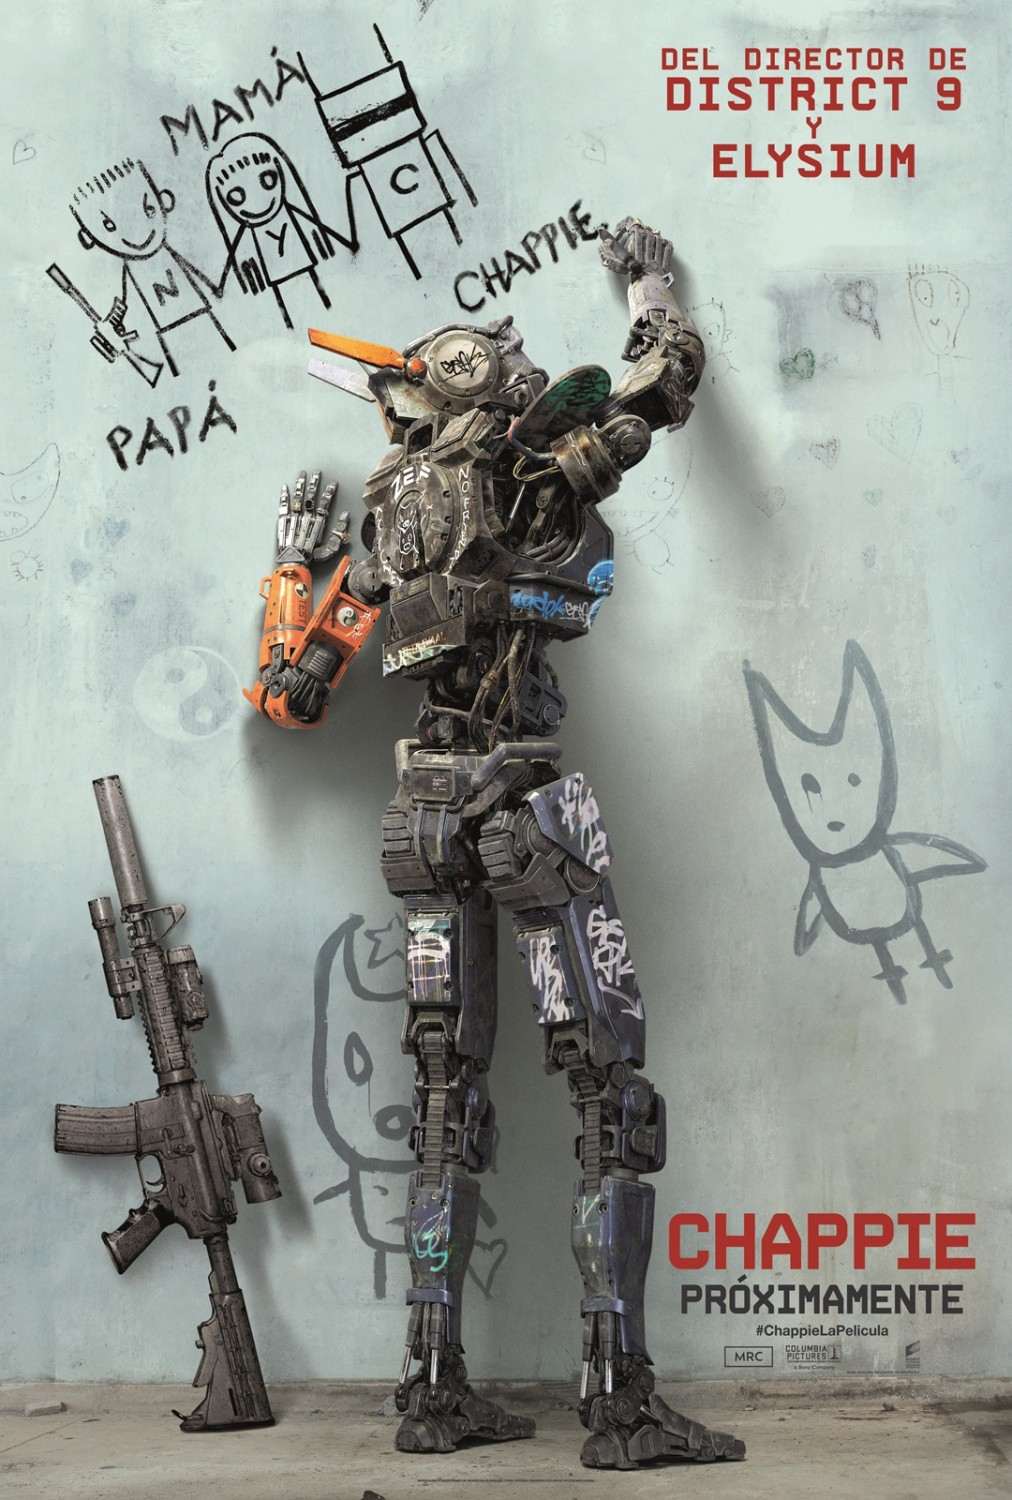 Chappie-Official Poster Banner XXLG-18NOVEMBRO2014